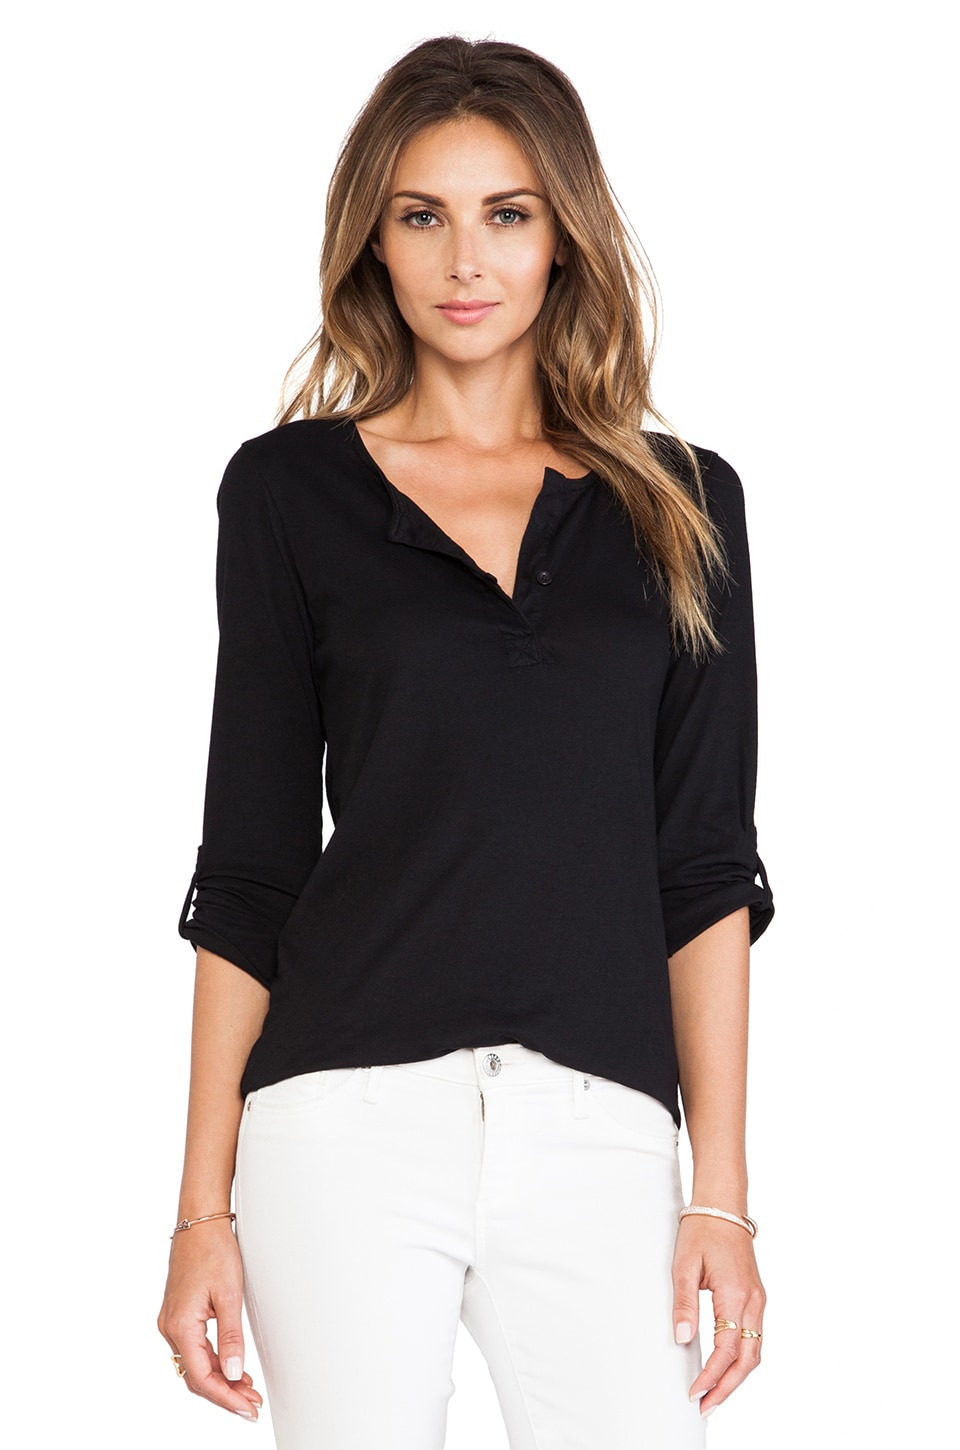 Bobi Light Weight Jersey Long Sleeve in Black